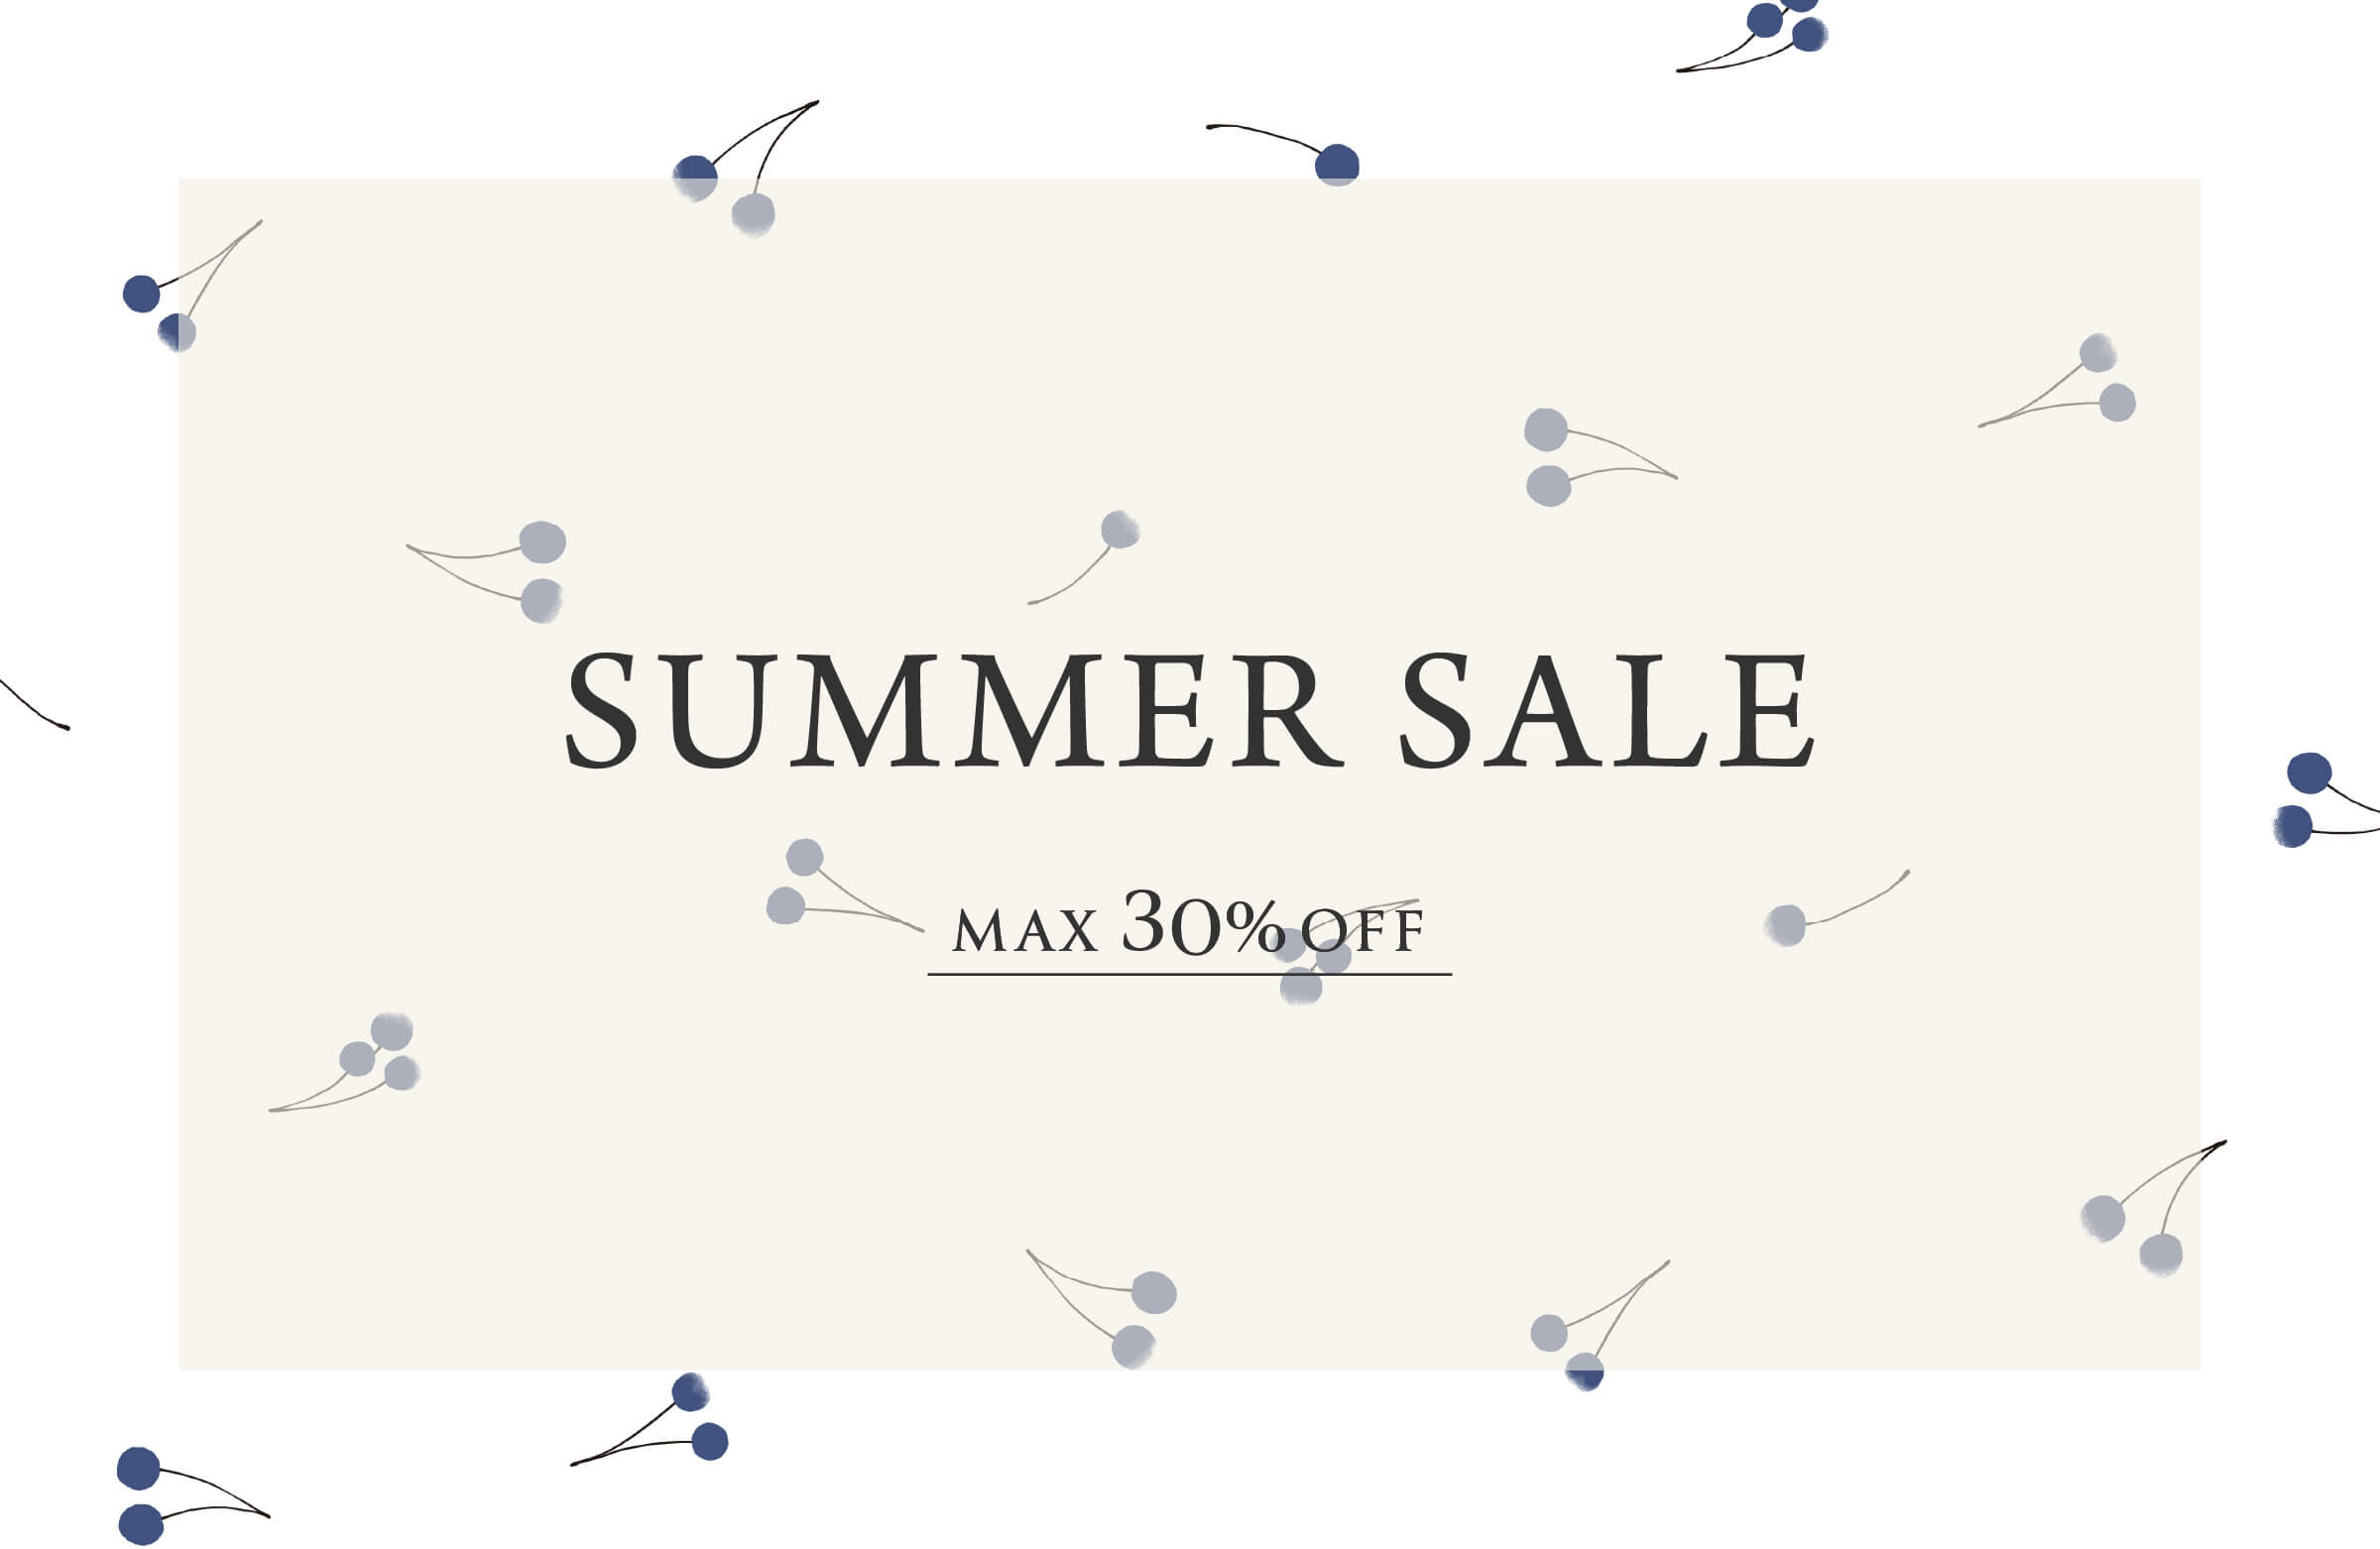 SUMMER SALE MAX50%OFF